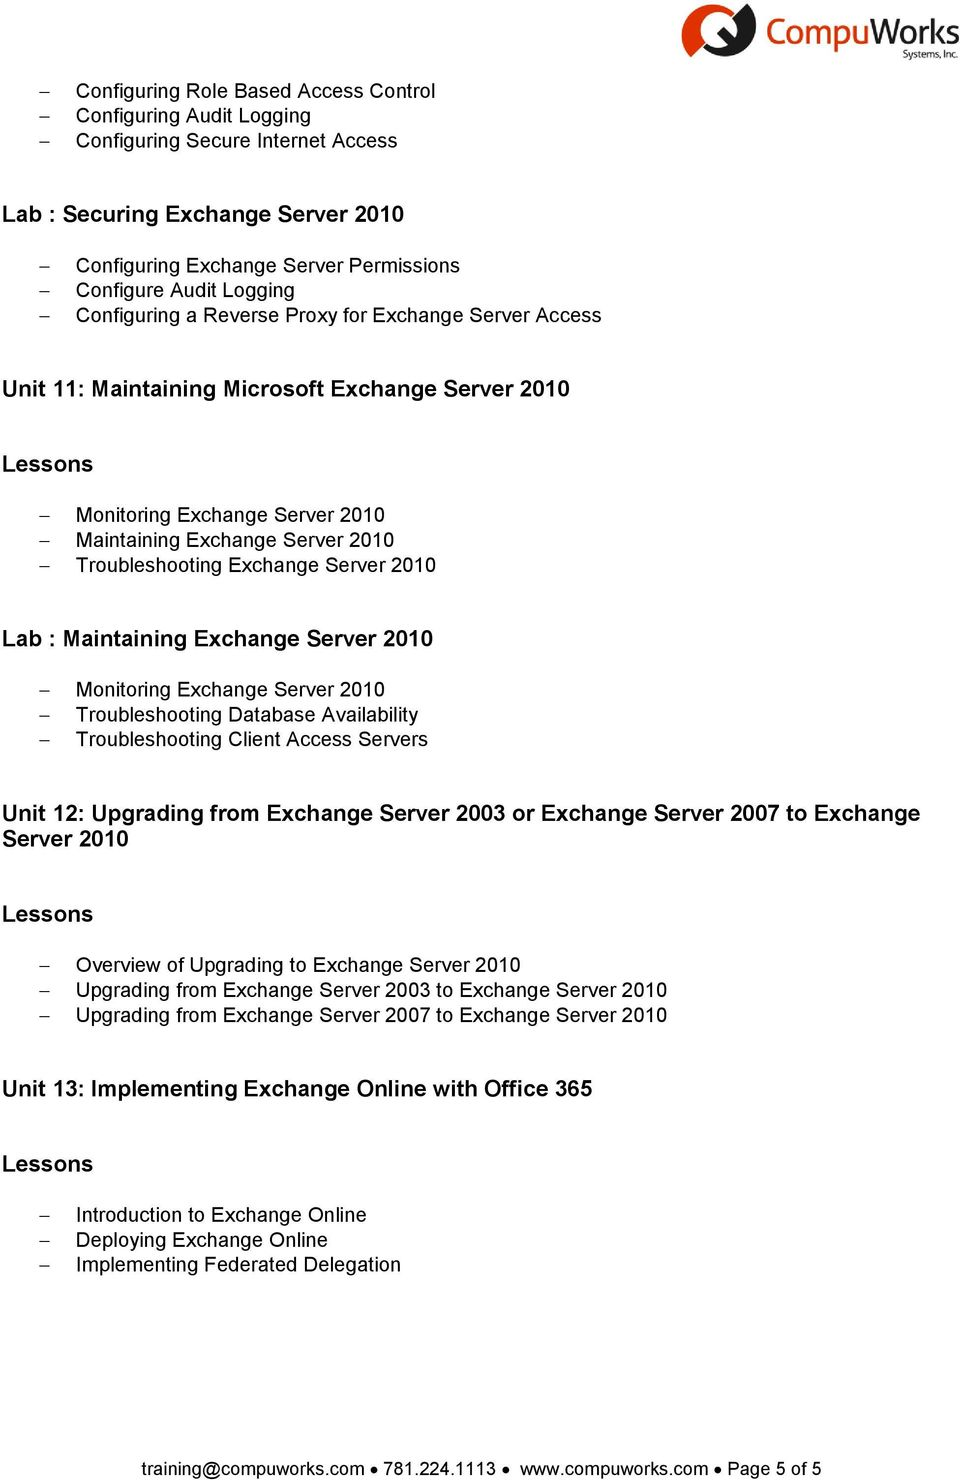 Server 2010 Lab : Maintaining Exchange Server 2010 Monitoring Exchange Server 2010 Troubleshooting Database Availability Troubleshooting Client Access Servers Unit 12: Upgrading from Exchange Server